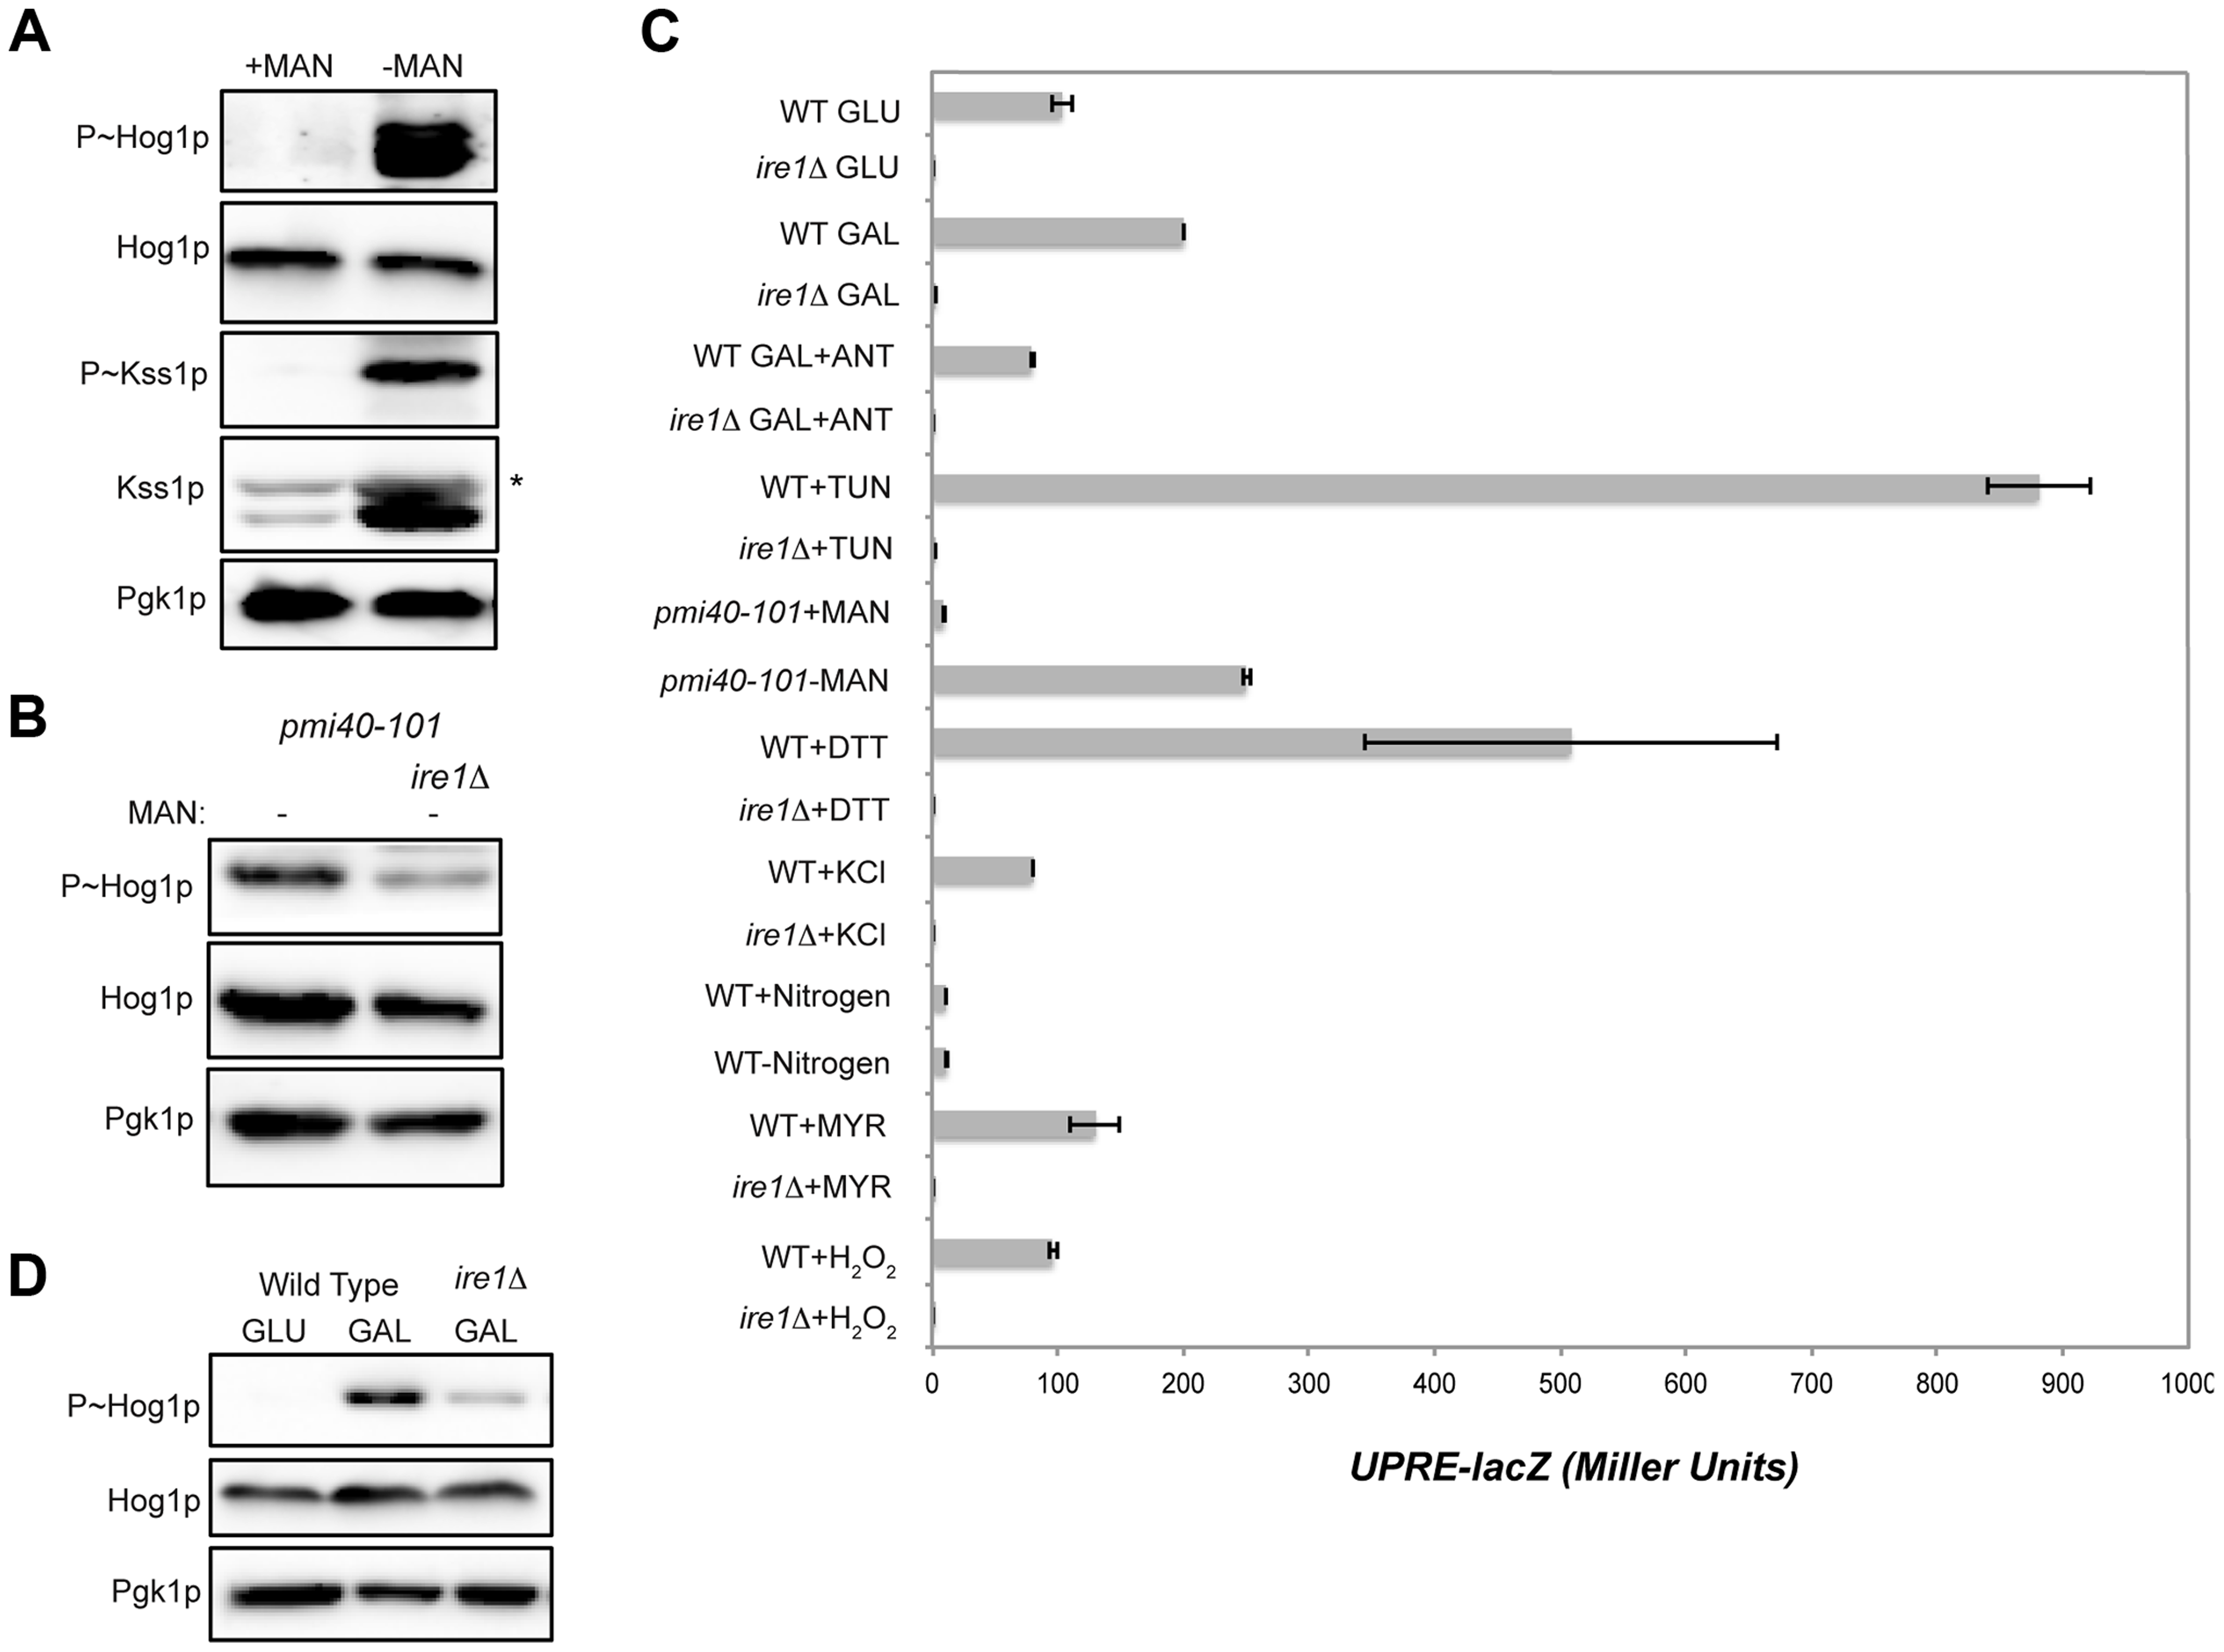 Role of the UPR in mediating HOG pathway activation during growth in galactose and in response to protein glycosylation deficiency.